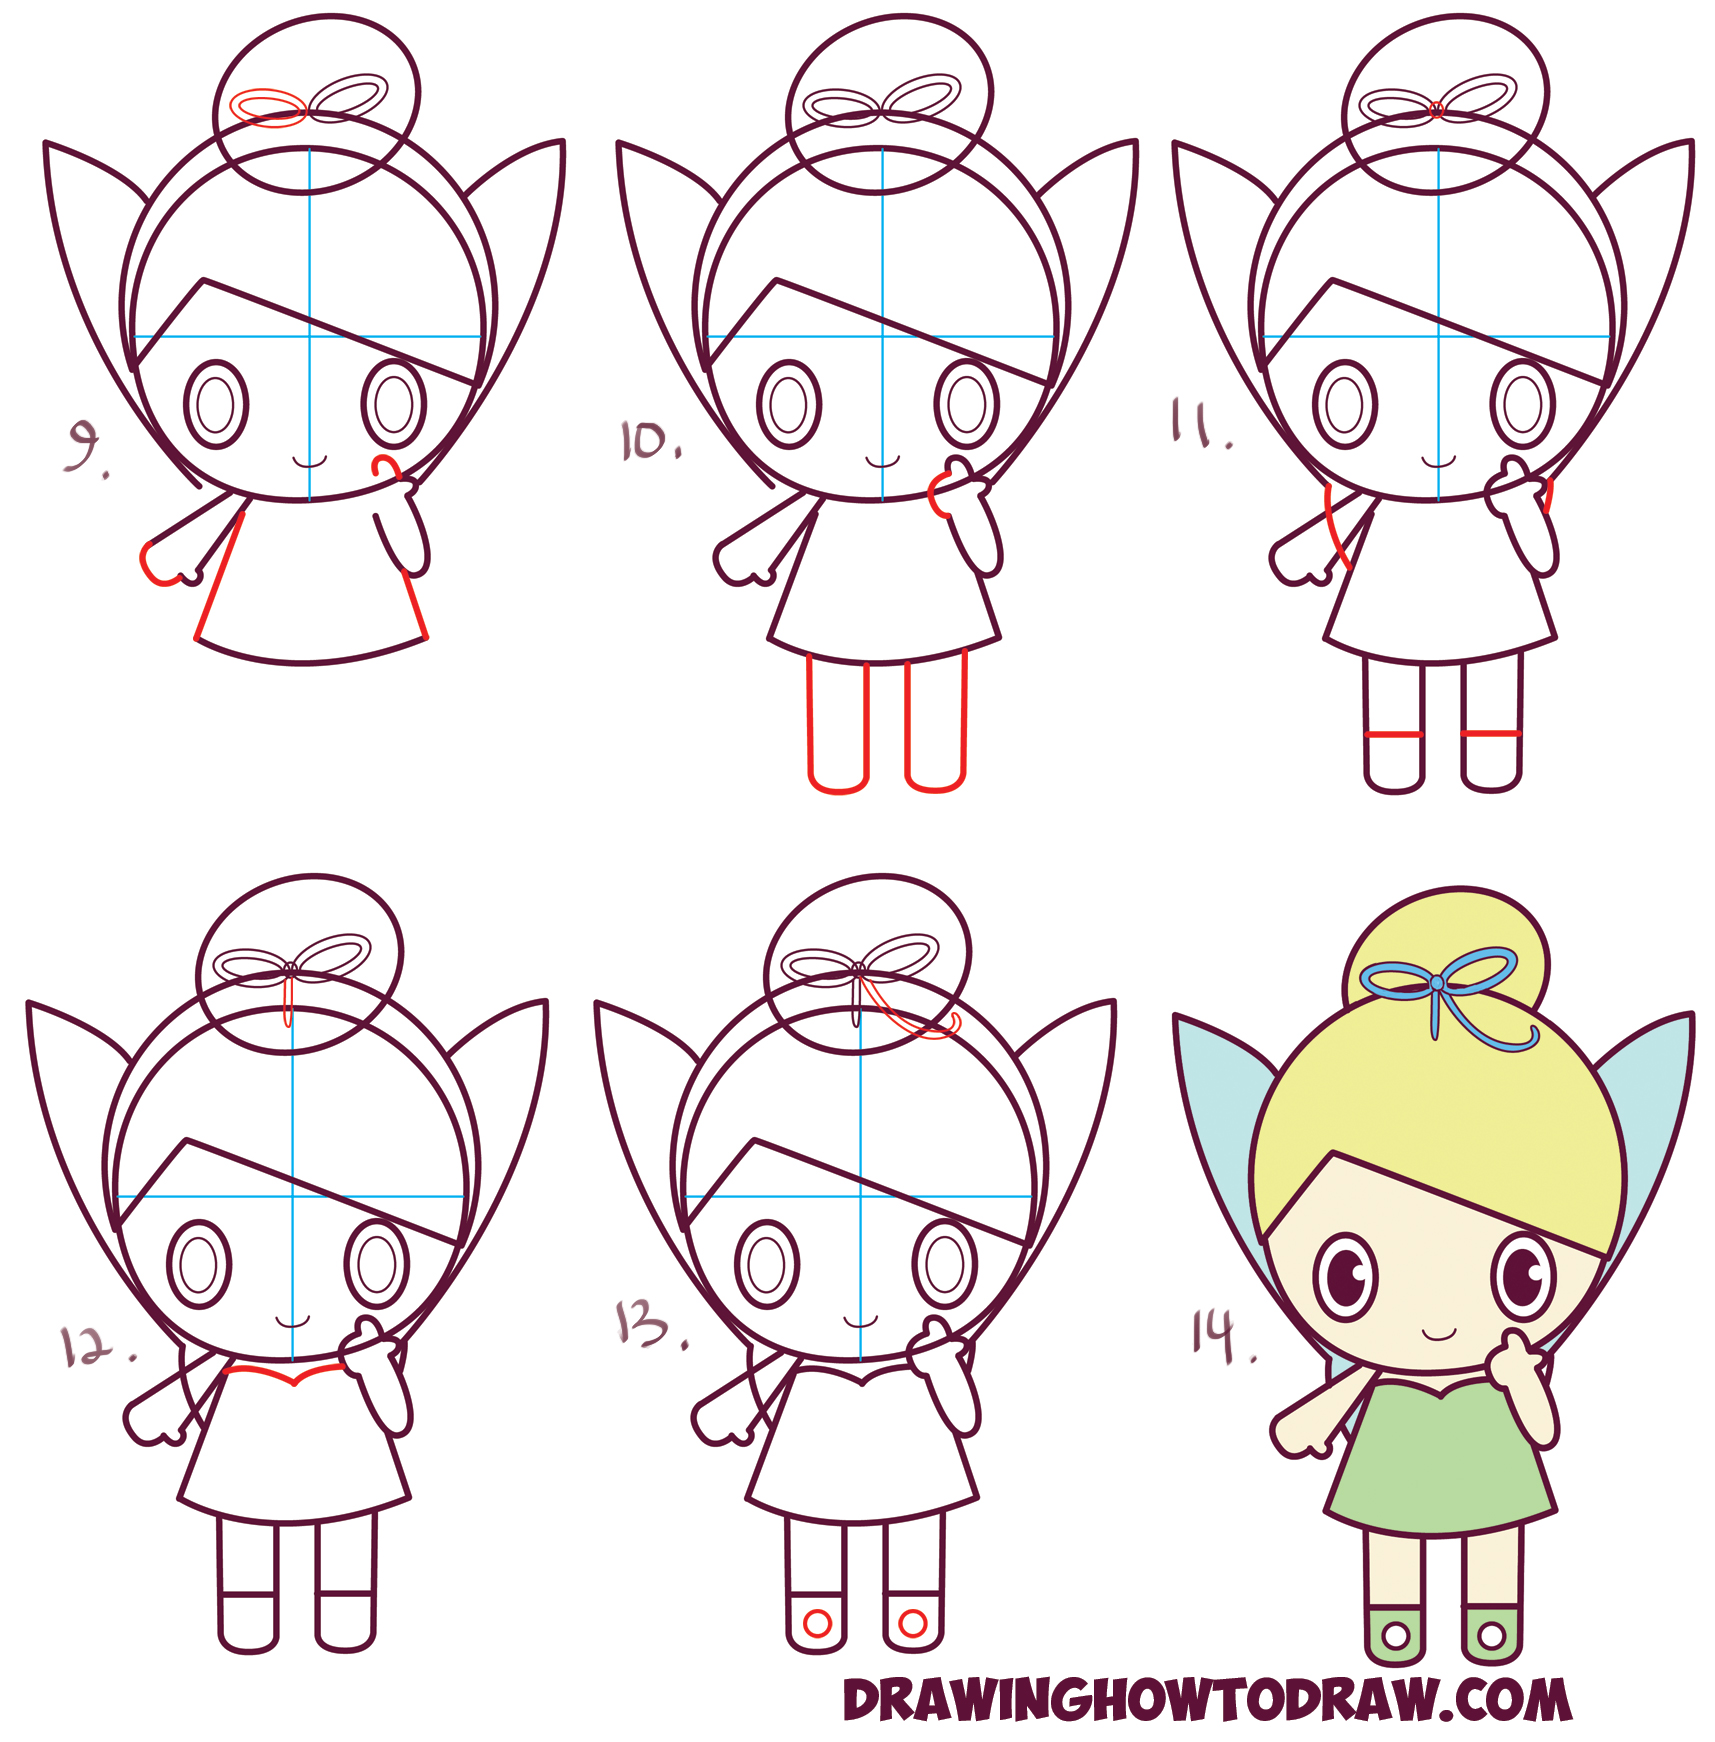 Uncategorized Disney Drawings Step By Step how to draw chibi tinkerbell the disney fairy in easy step by learn cute baby ish kawaii style tinkerbell